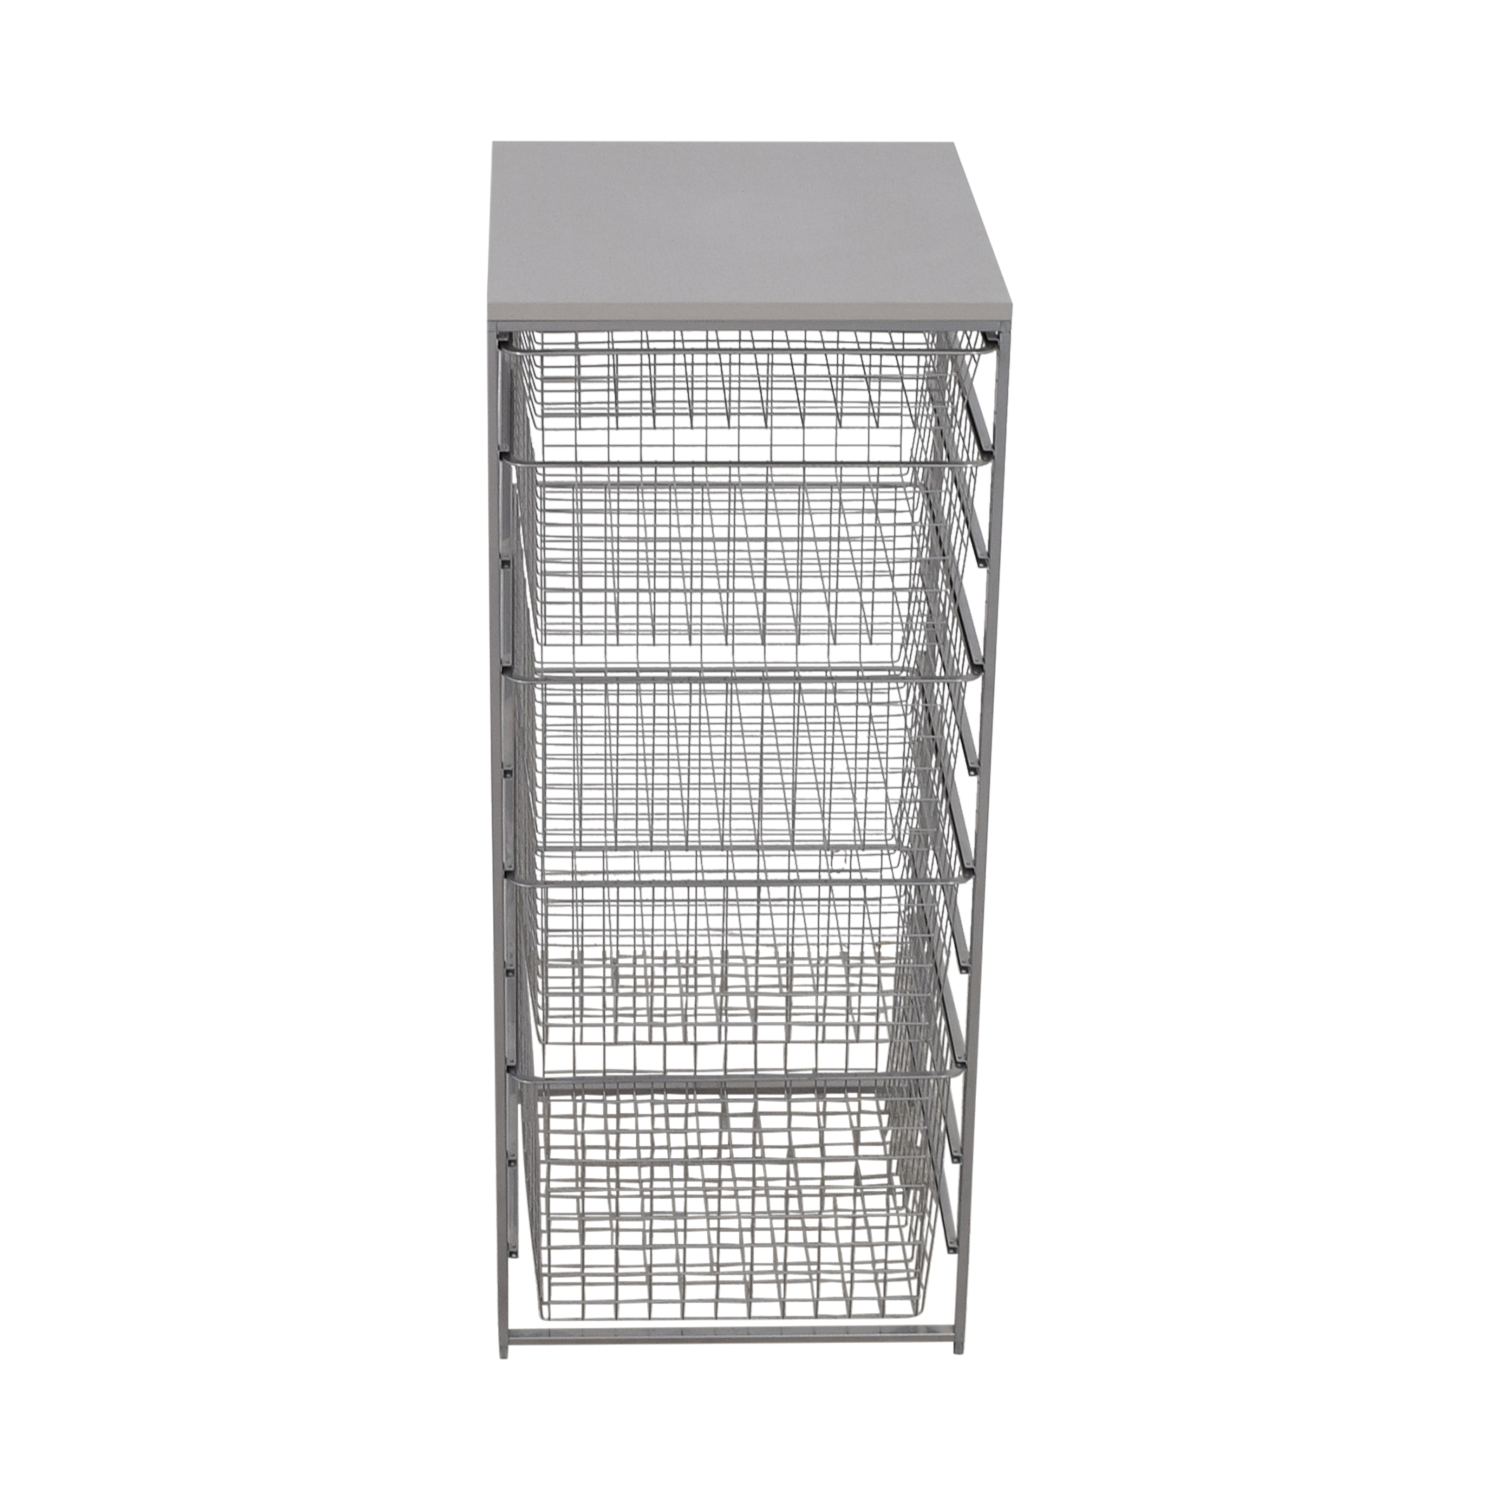 Elfa Elfa Platinum Metal Storage Rack second hand